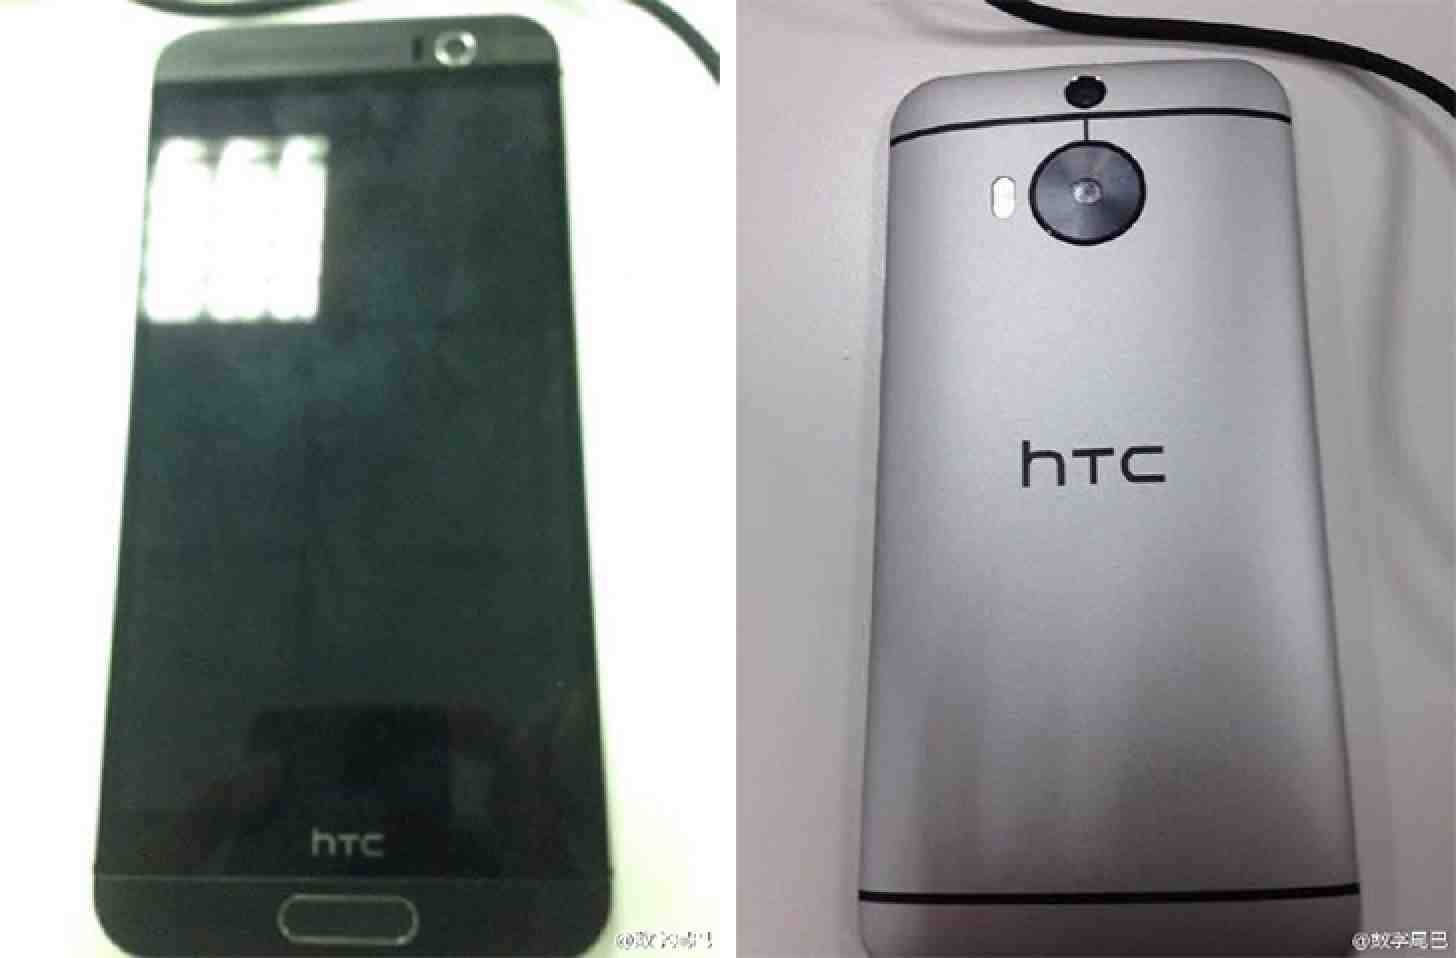 1425644425_htc-one-m9-plus-htc-desire-a55-leaked-images-2.jpg